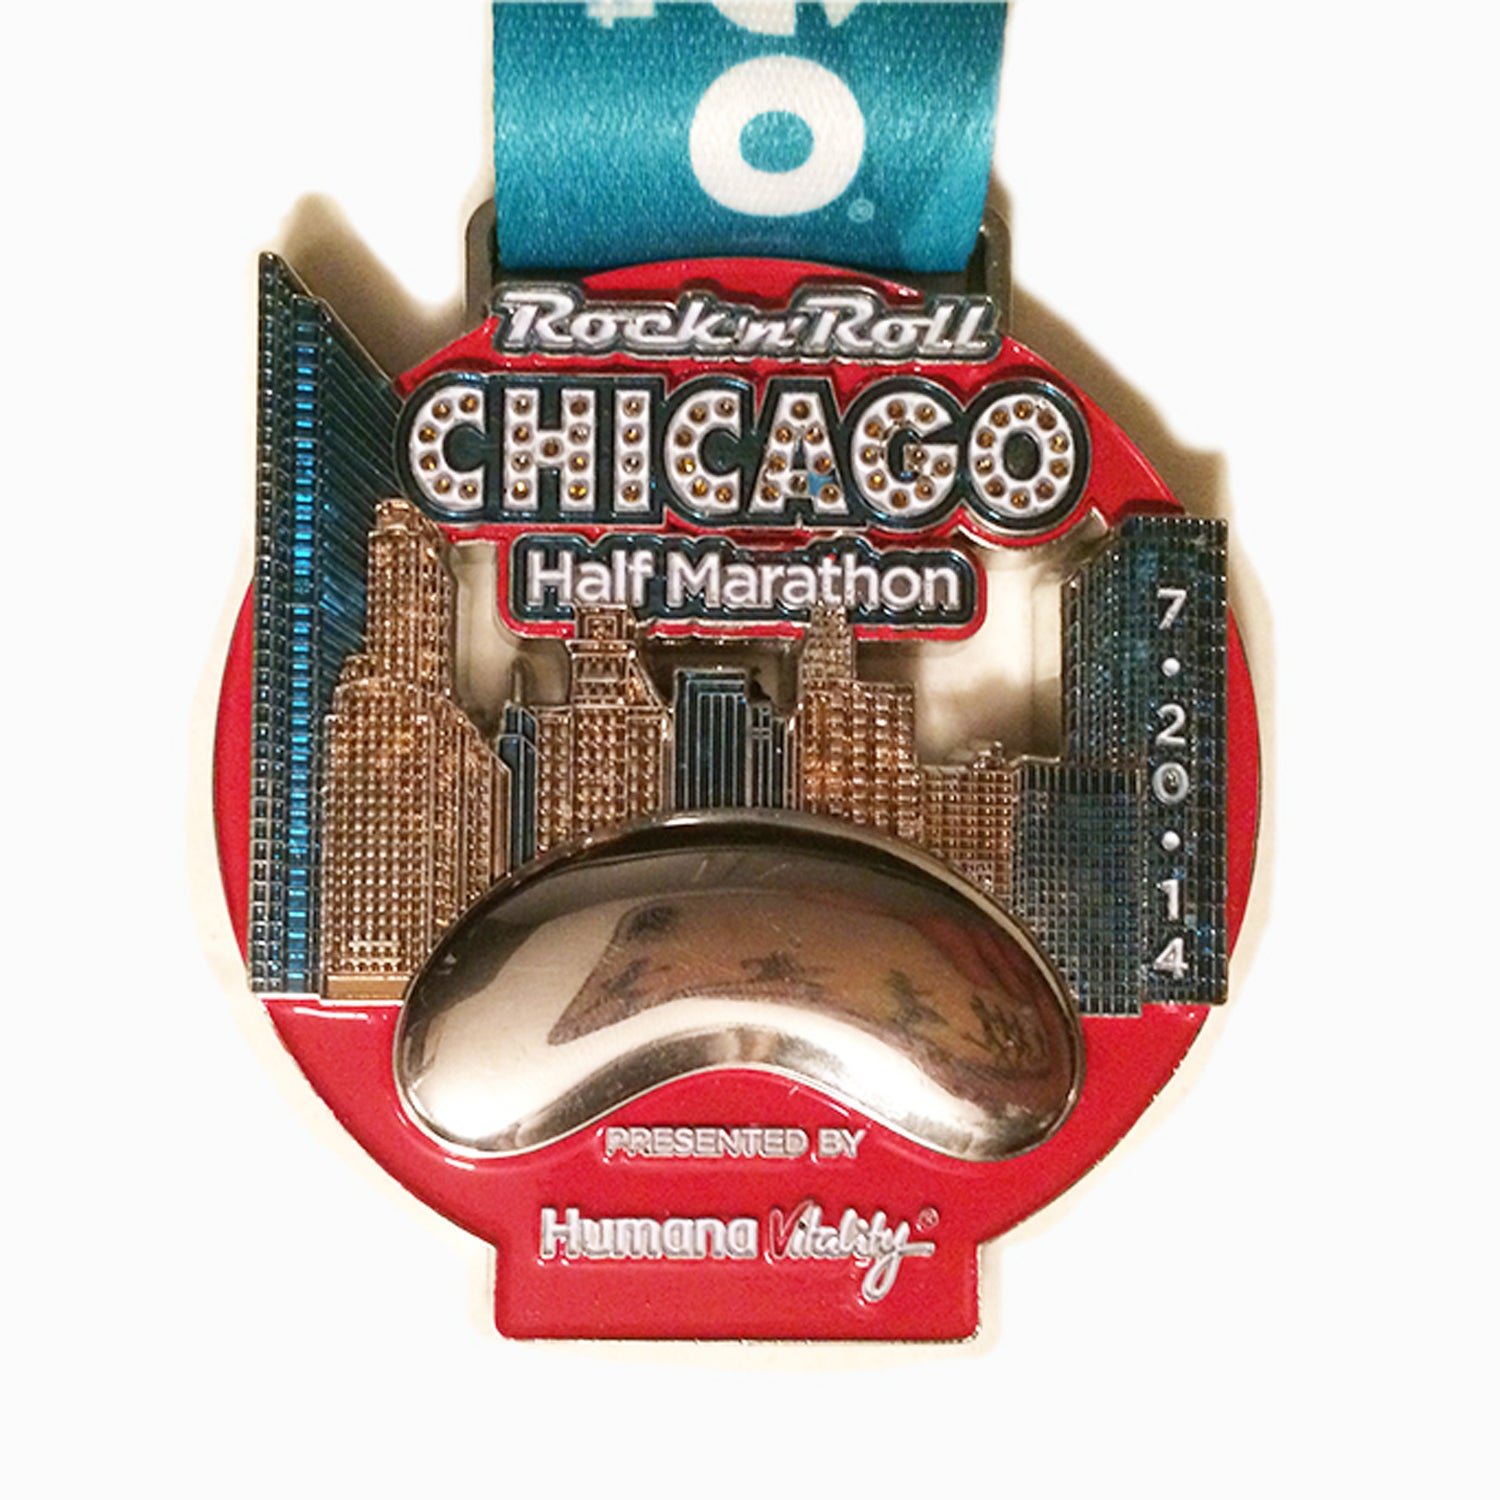 Solera: Advertisers are always quick to feature the Willis and Hancock Towers on promotional materials, so it's refreshing to see other monuments make the cut. The 2014 edition of the city's largest half marathon featured Cloud Gate, more affectionately known as the Bean, and a short strip of Michigan Avenue.